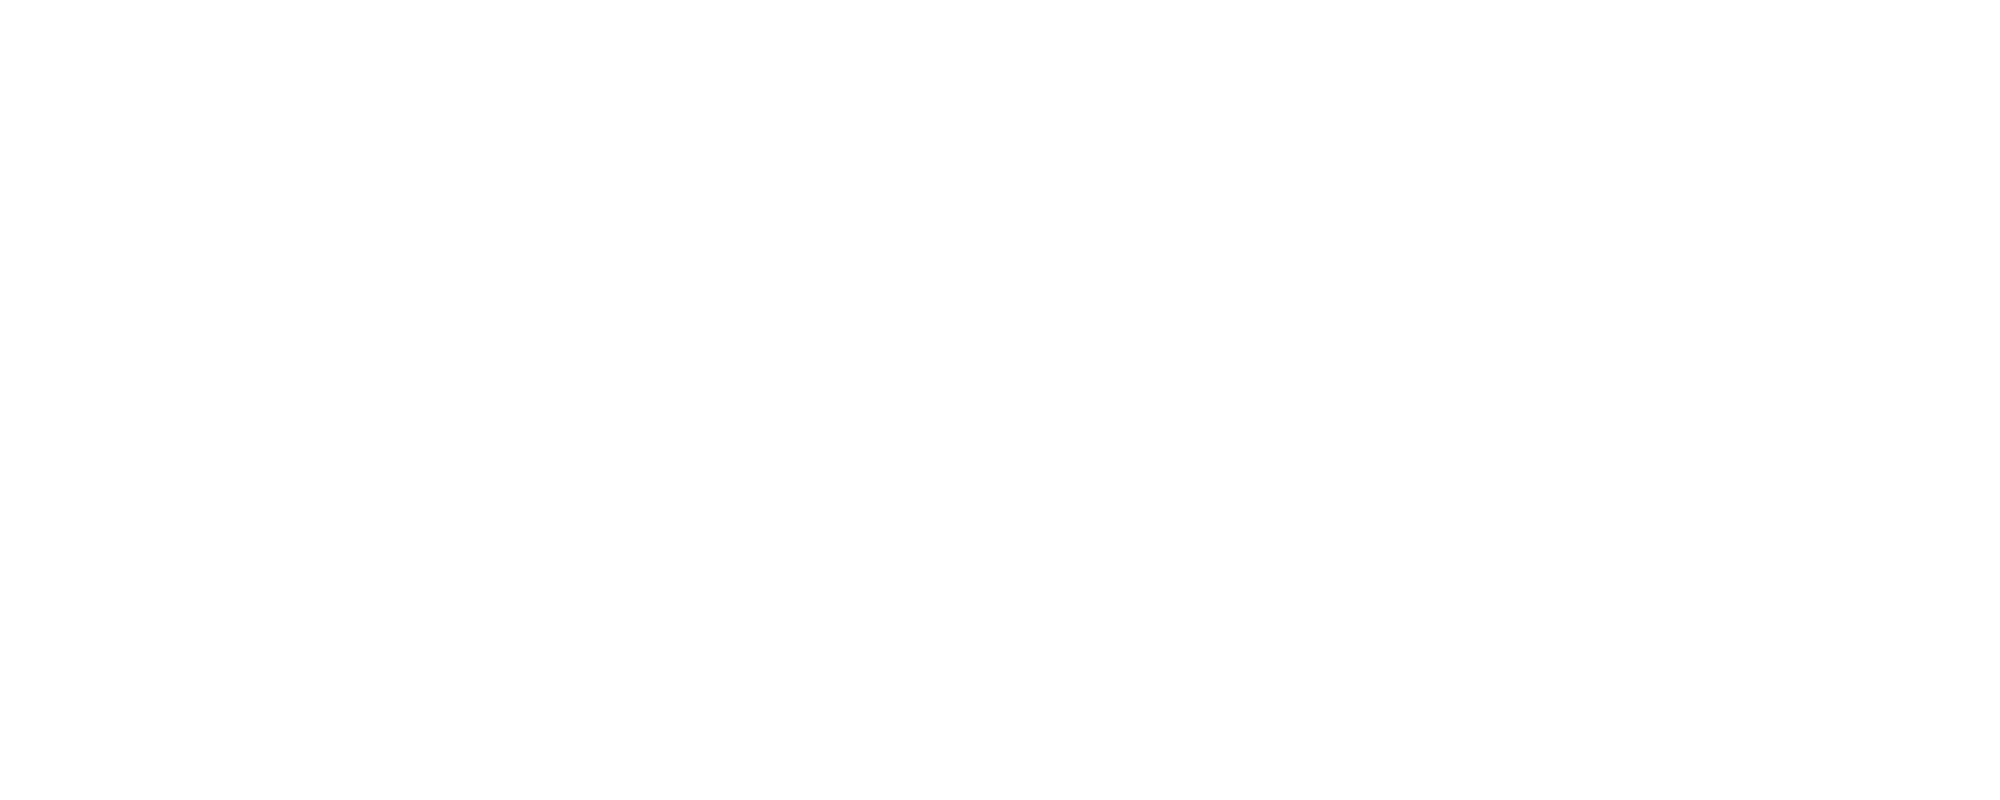 JULICA ONLINE BOUTIQUE